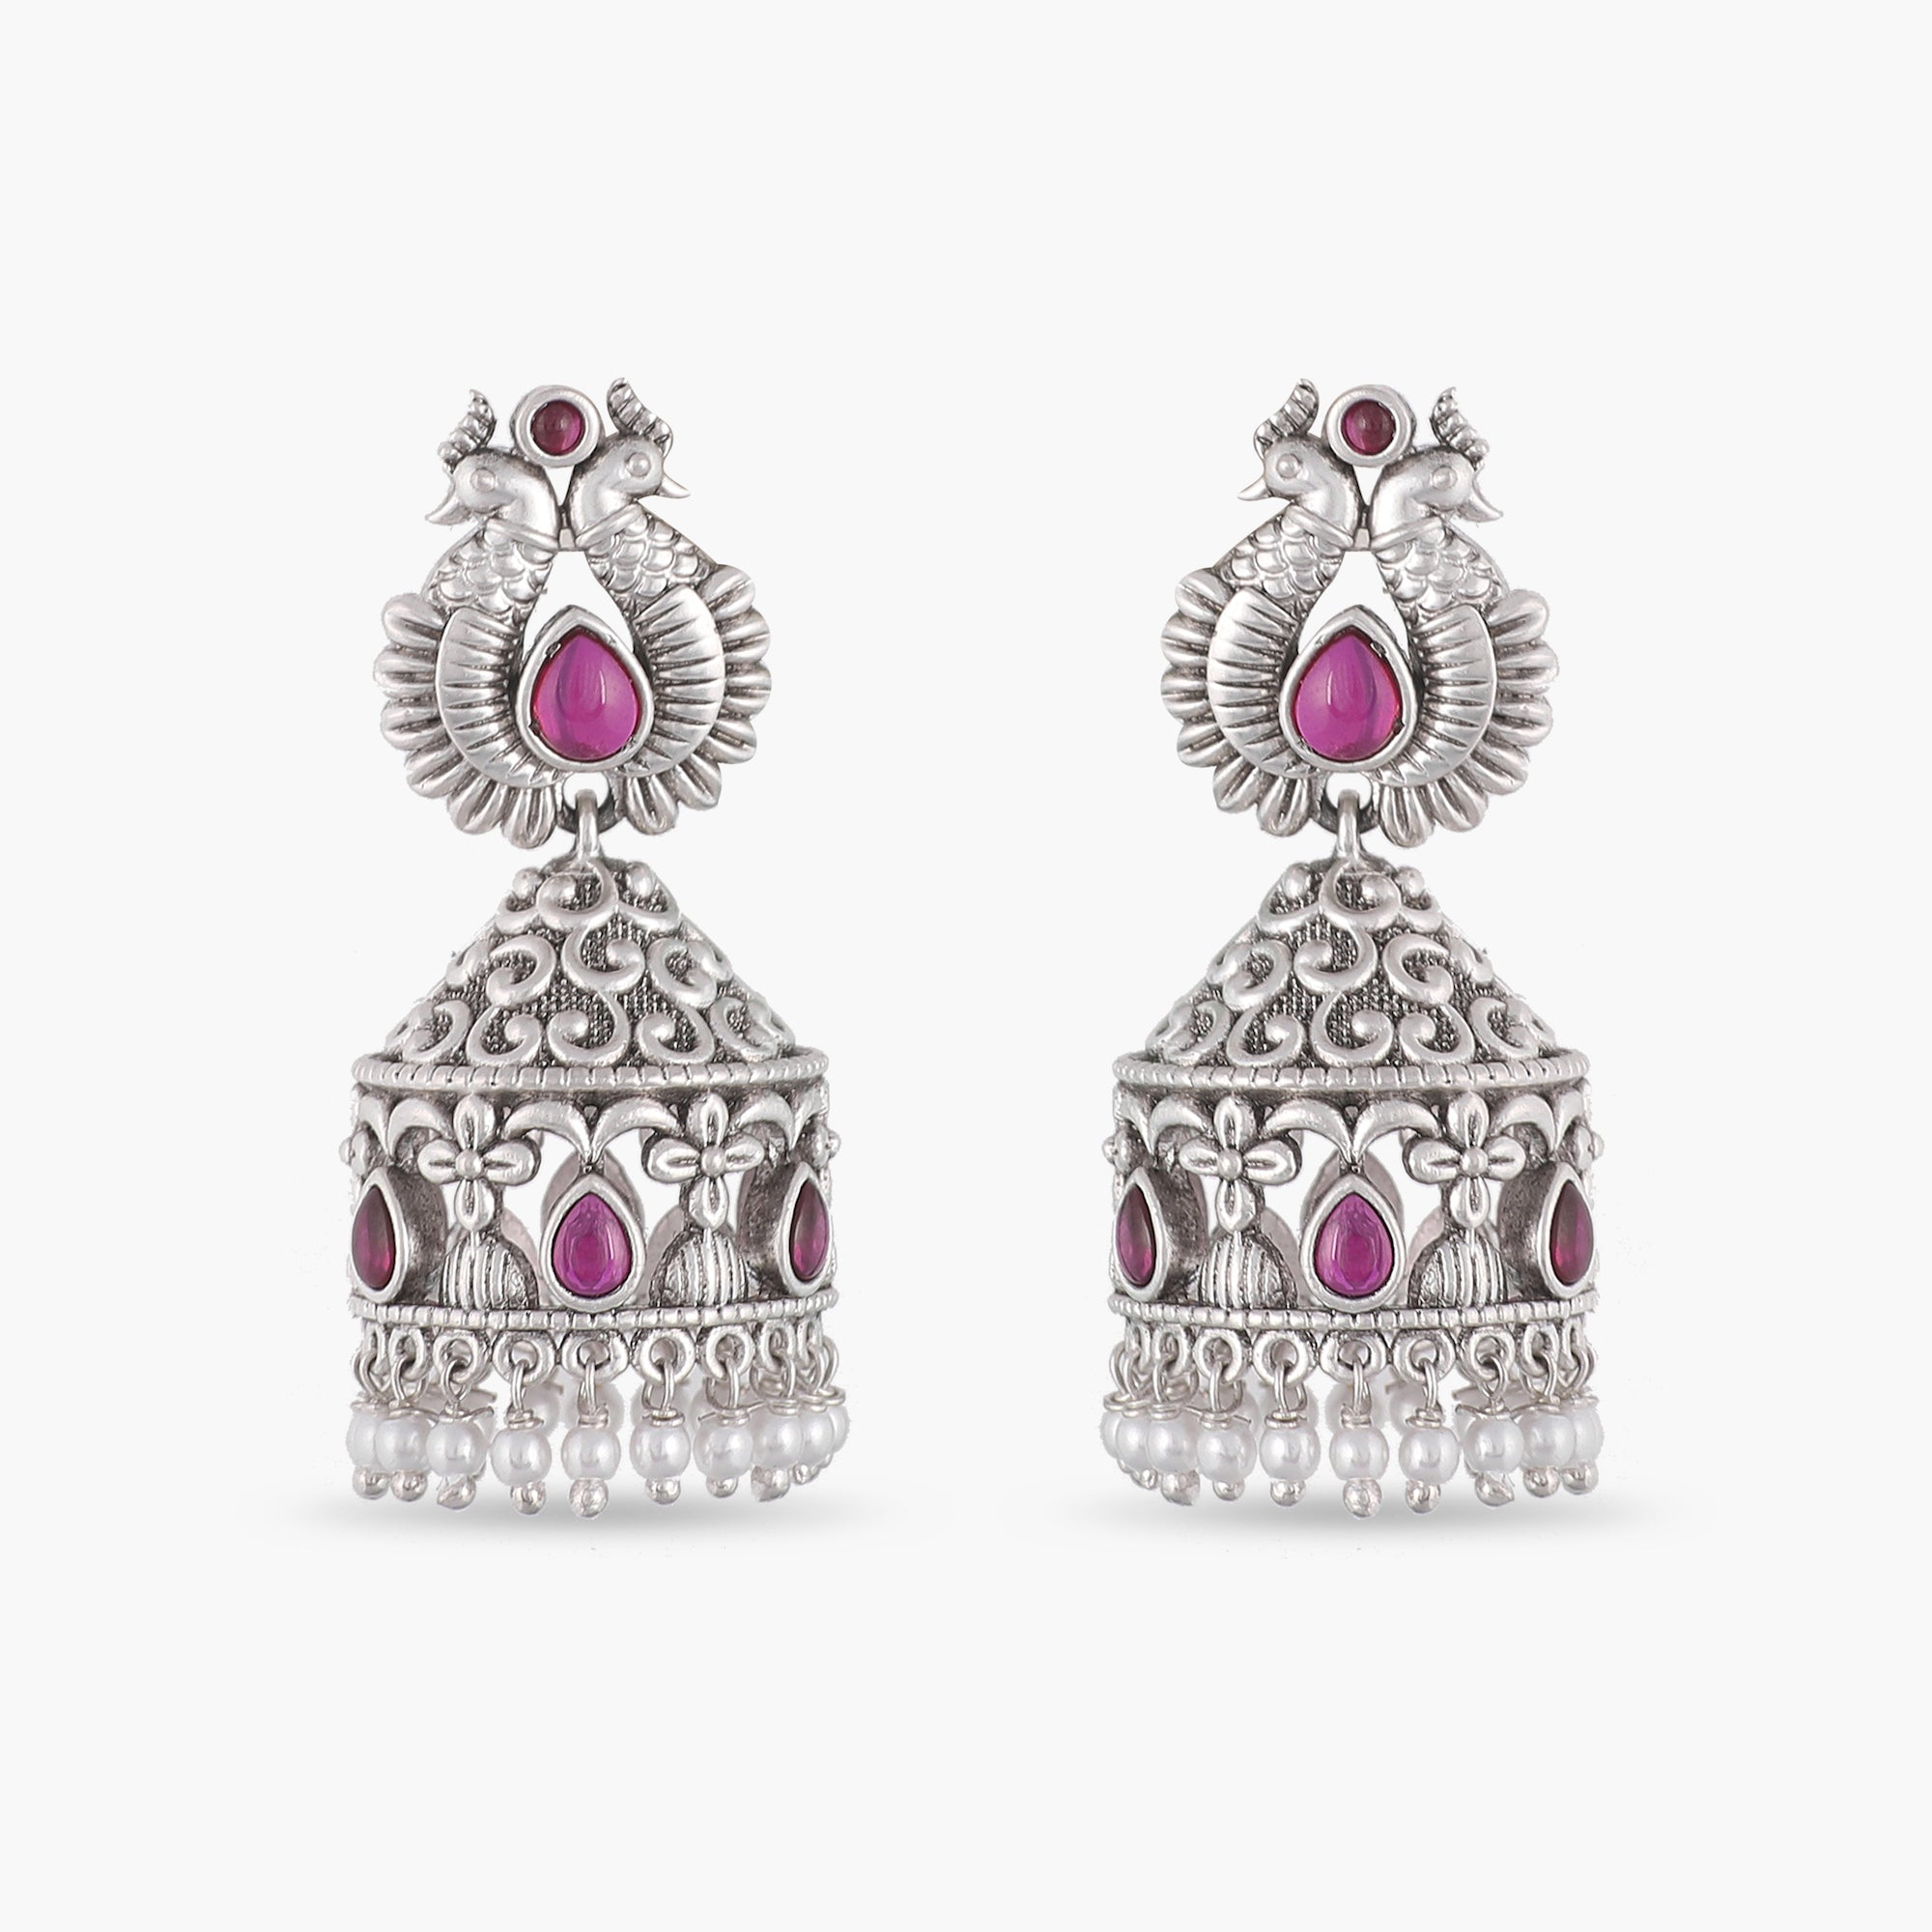 Keka Antique Silver Jhumka Earrings